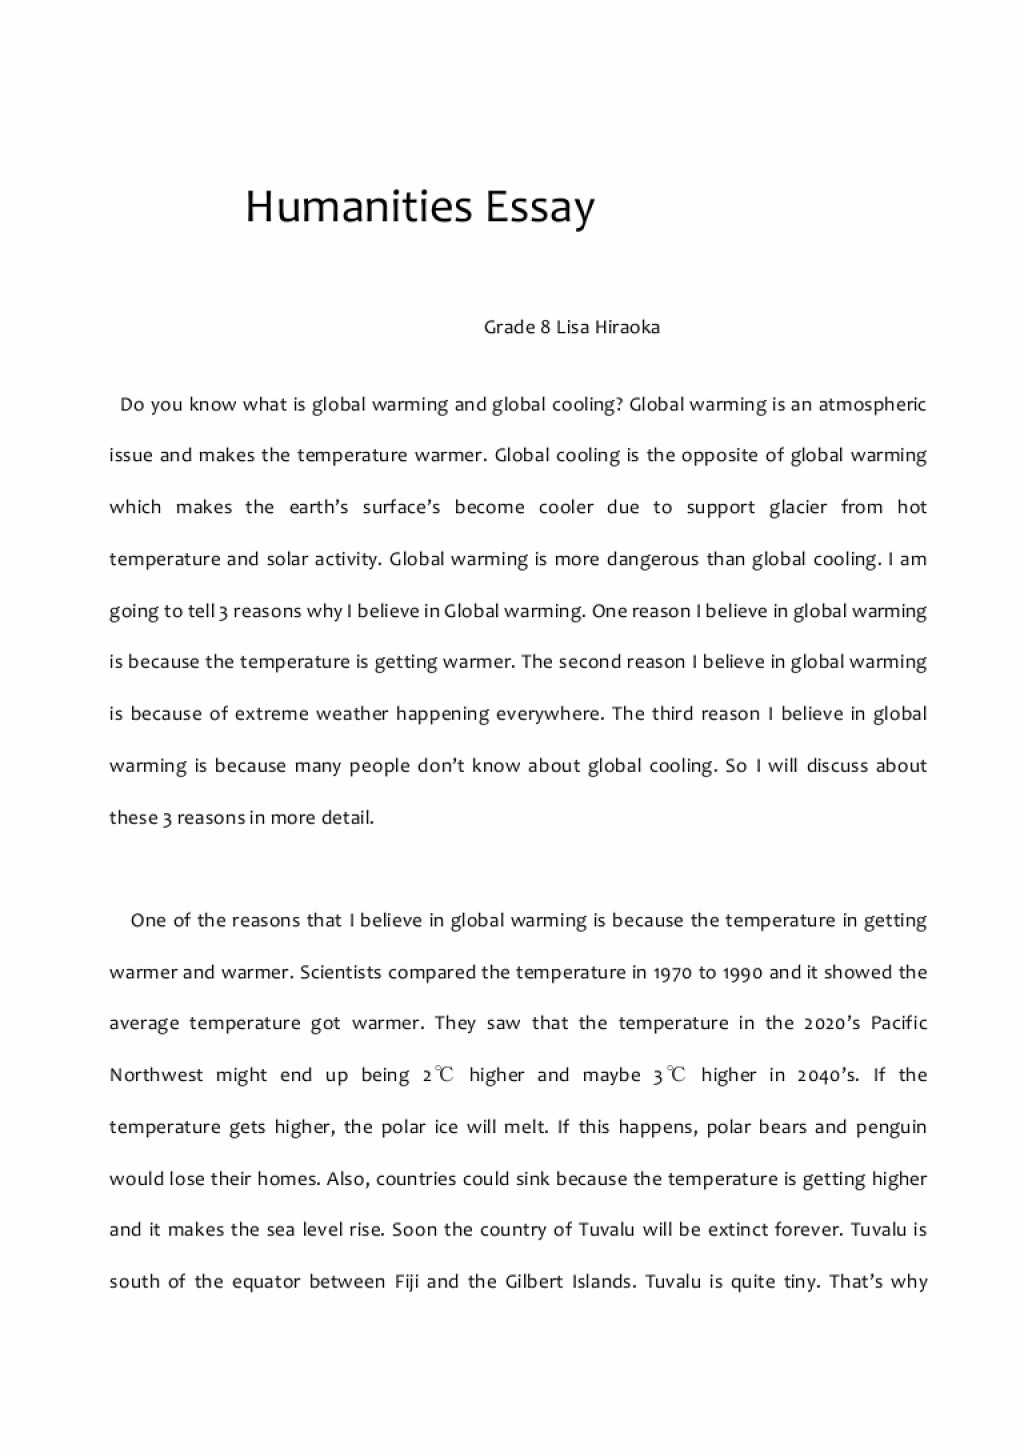 006 Global Warming Essay Humanitiesessay Phpapp02 Thumbnail Unusual Persuasive Thesis Free Research Paper Topics Large